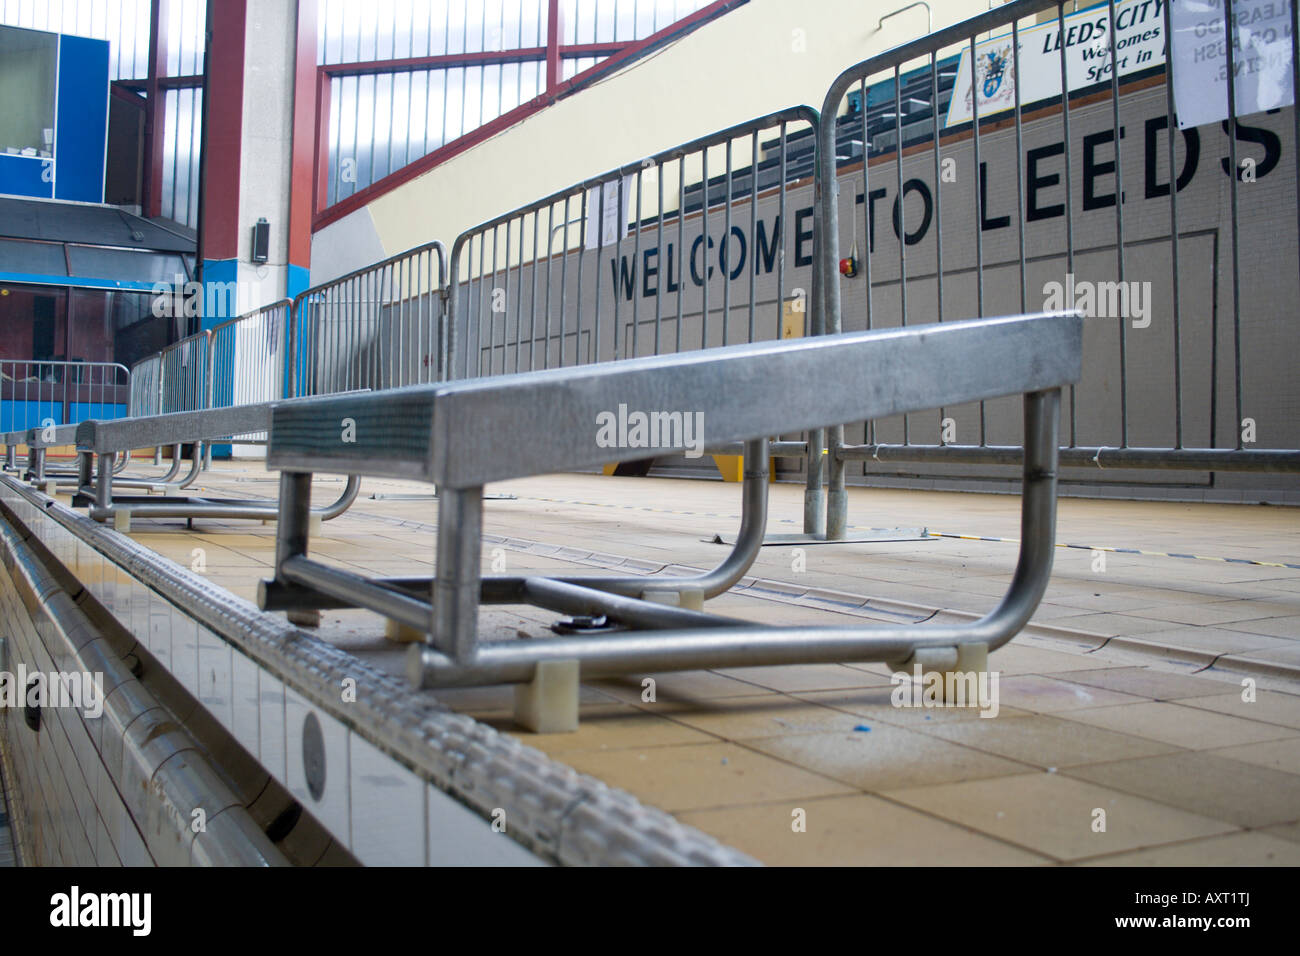 Race start platforms in the leeds international pool welcome to stock photo 16909937 alamy for Leeds international swimming pool